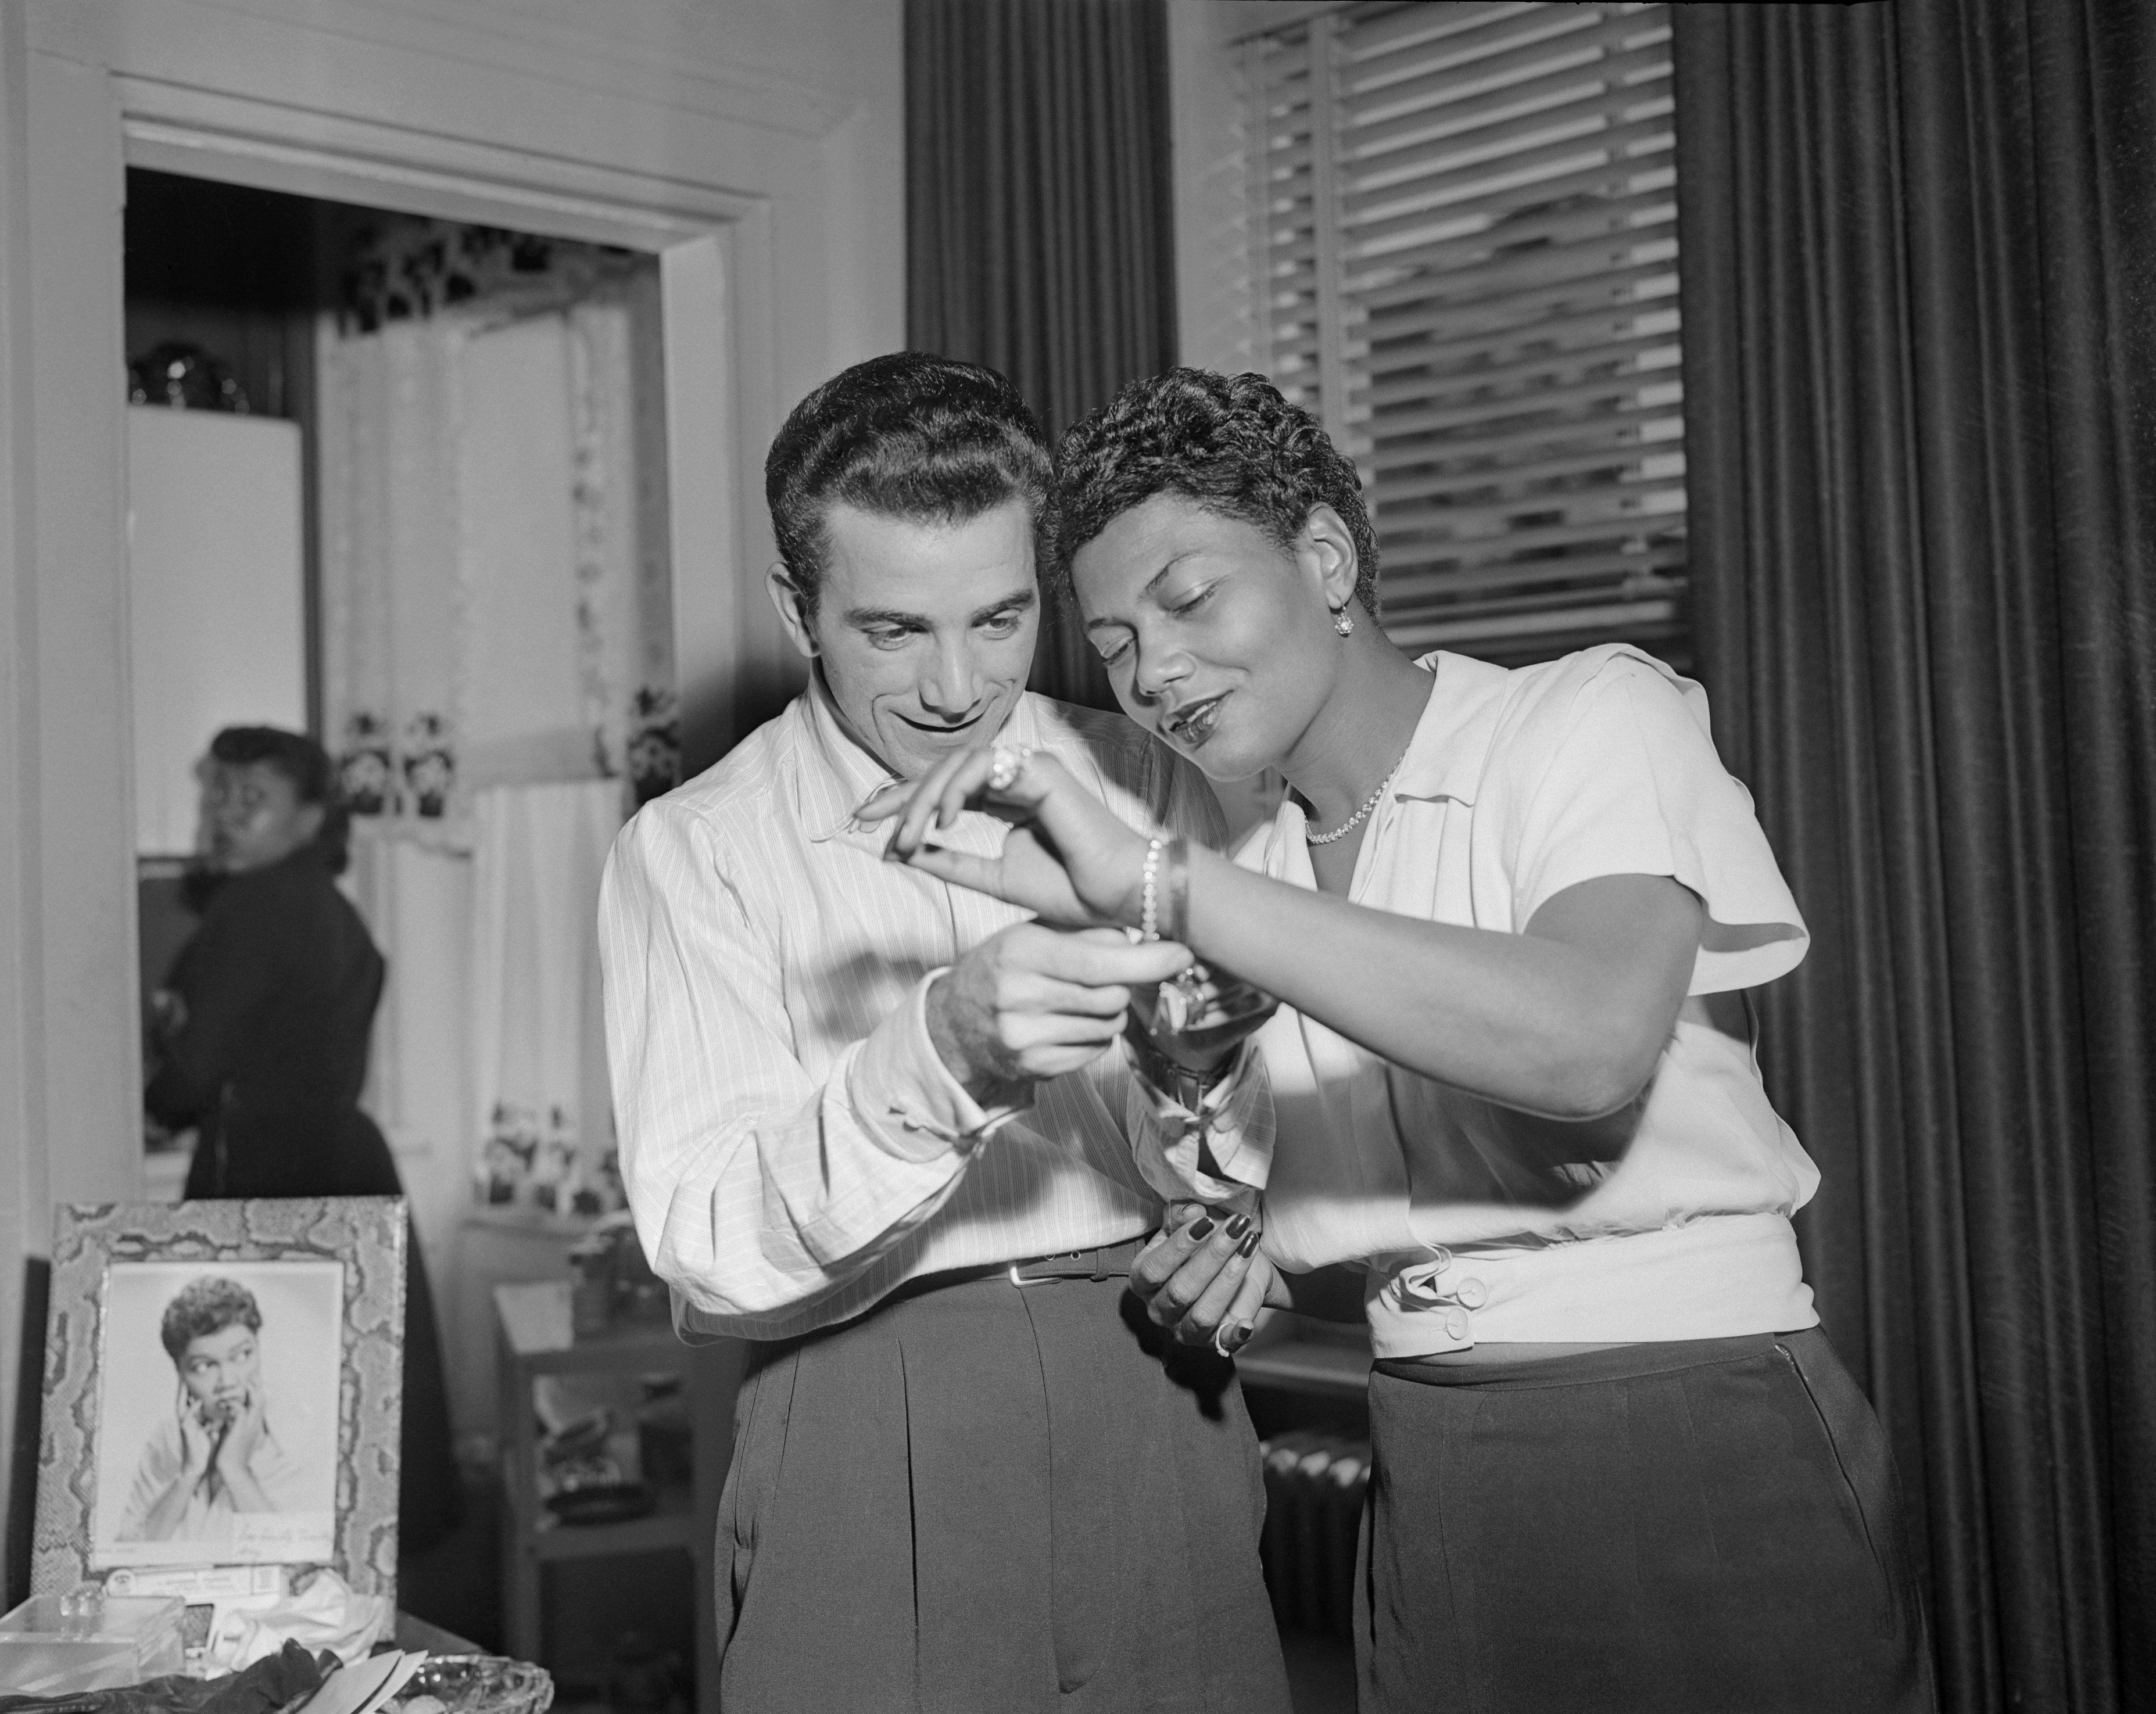 Pearl Bailey and Louie Bellson Jr. pictured at their home in London, November 29, 1952 | Photo: Getty Images